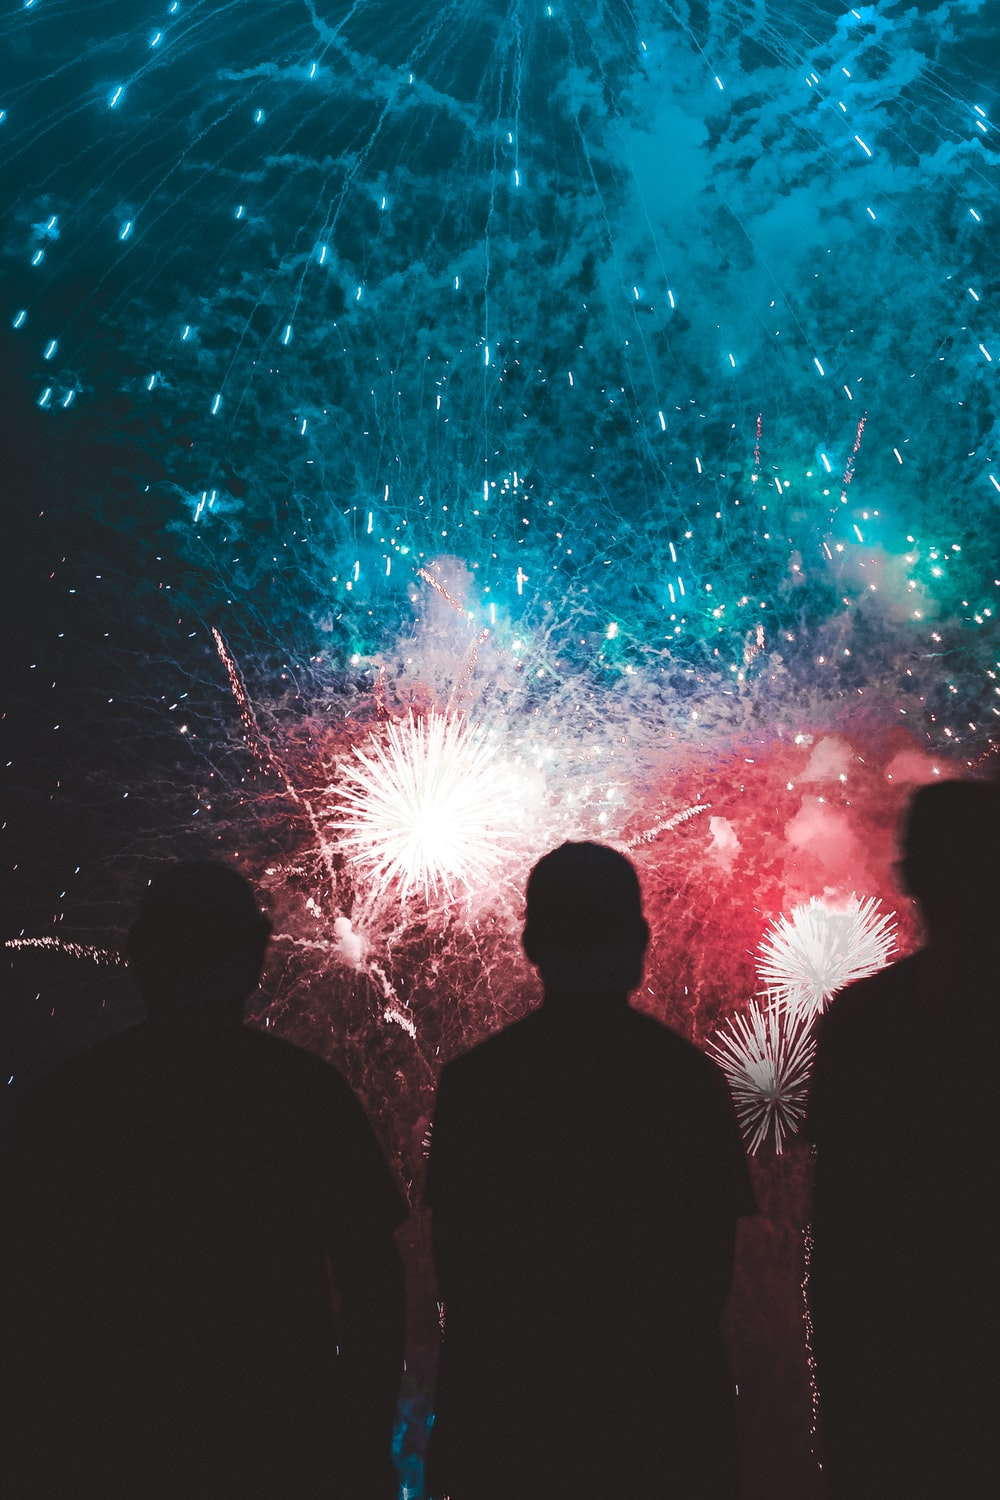 teal and red fireworks